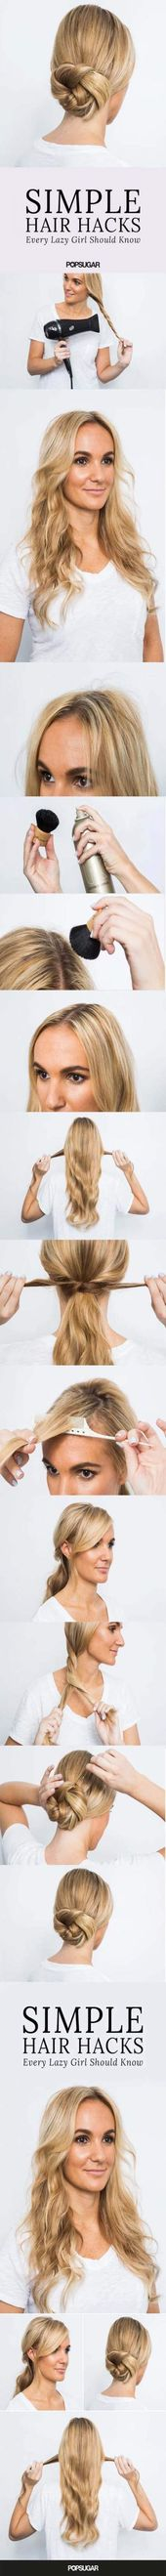 Hair ideas easy lazy girl bobby pins 39+ Ideas for 2019